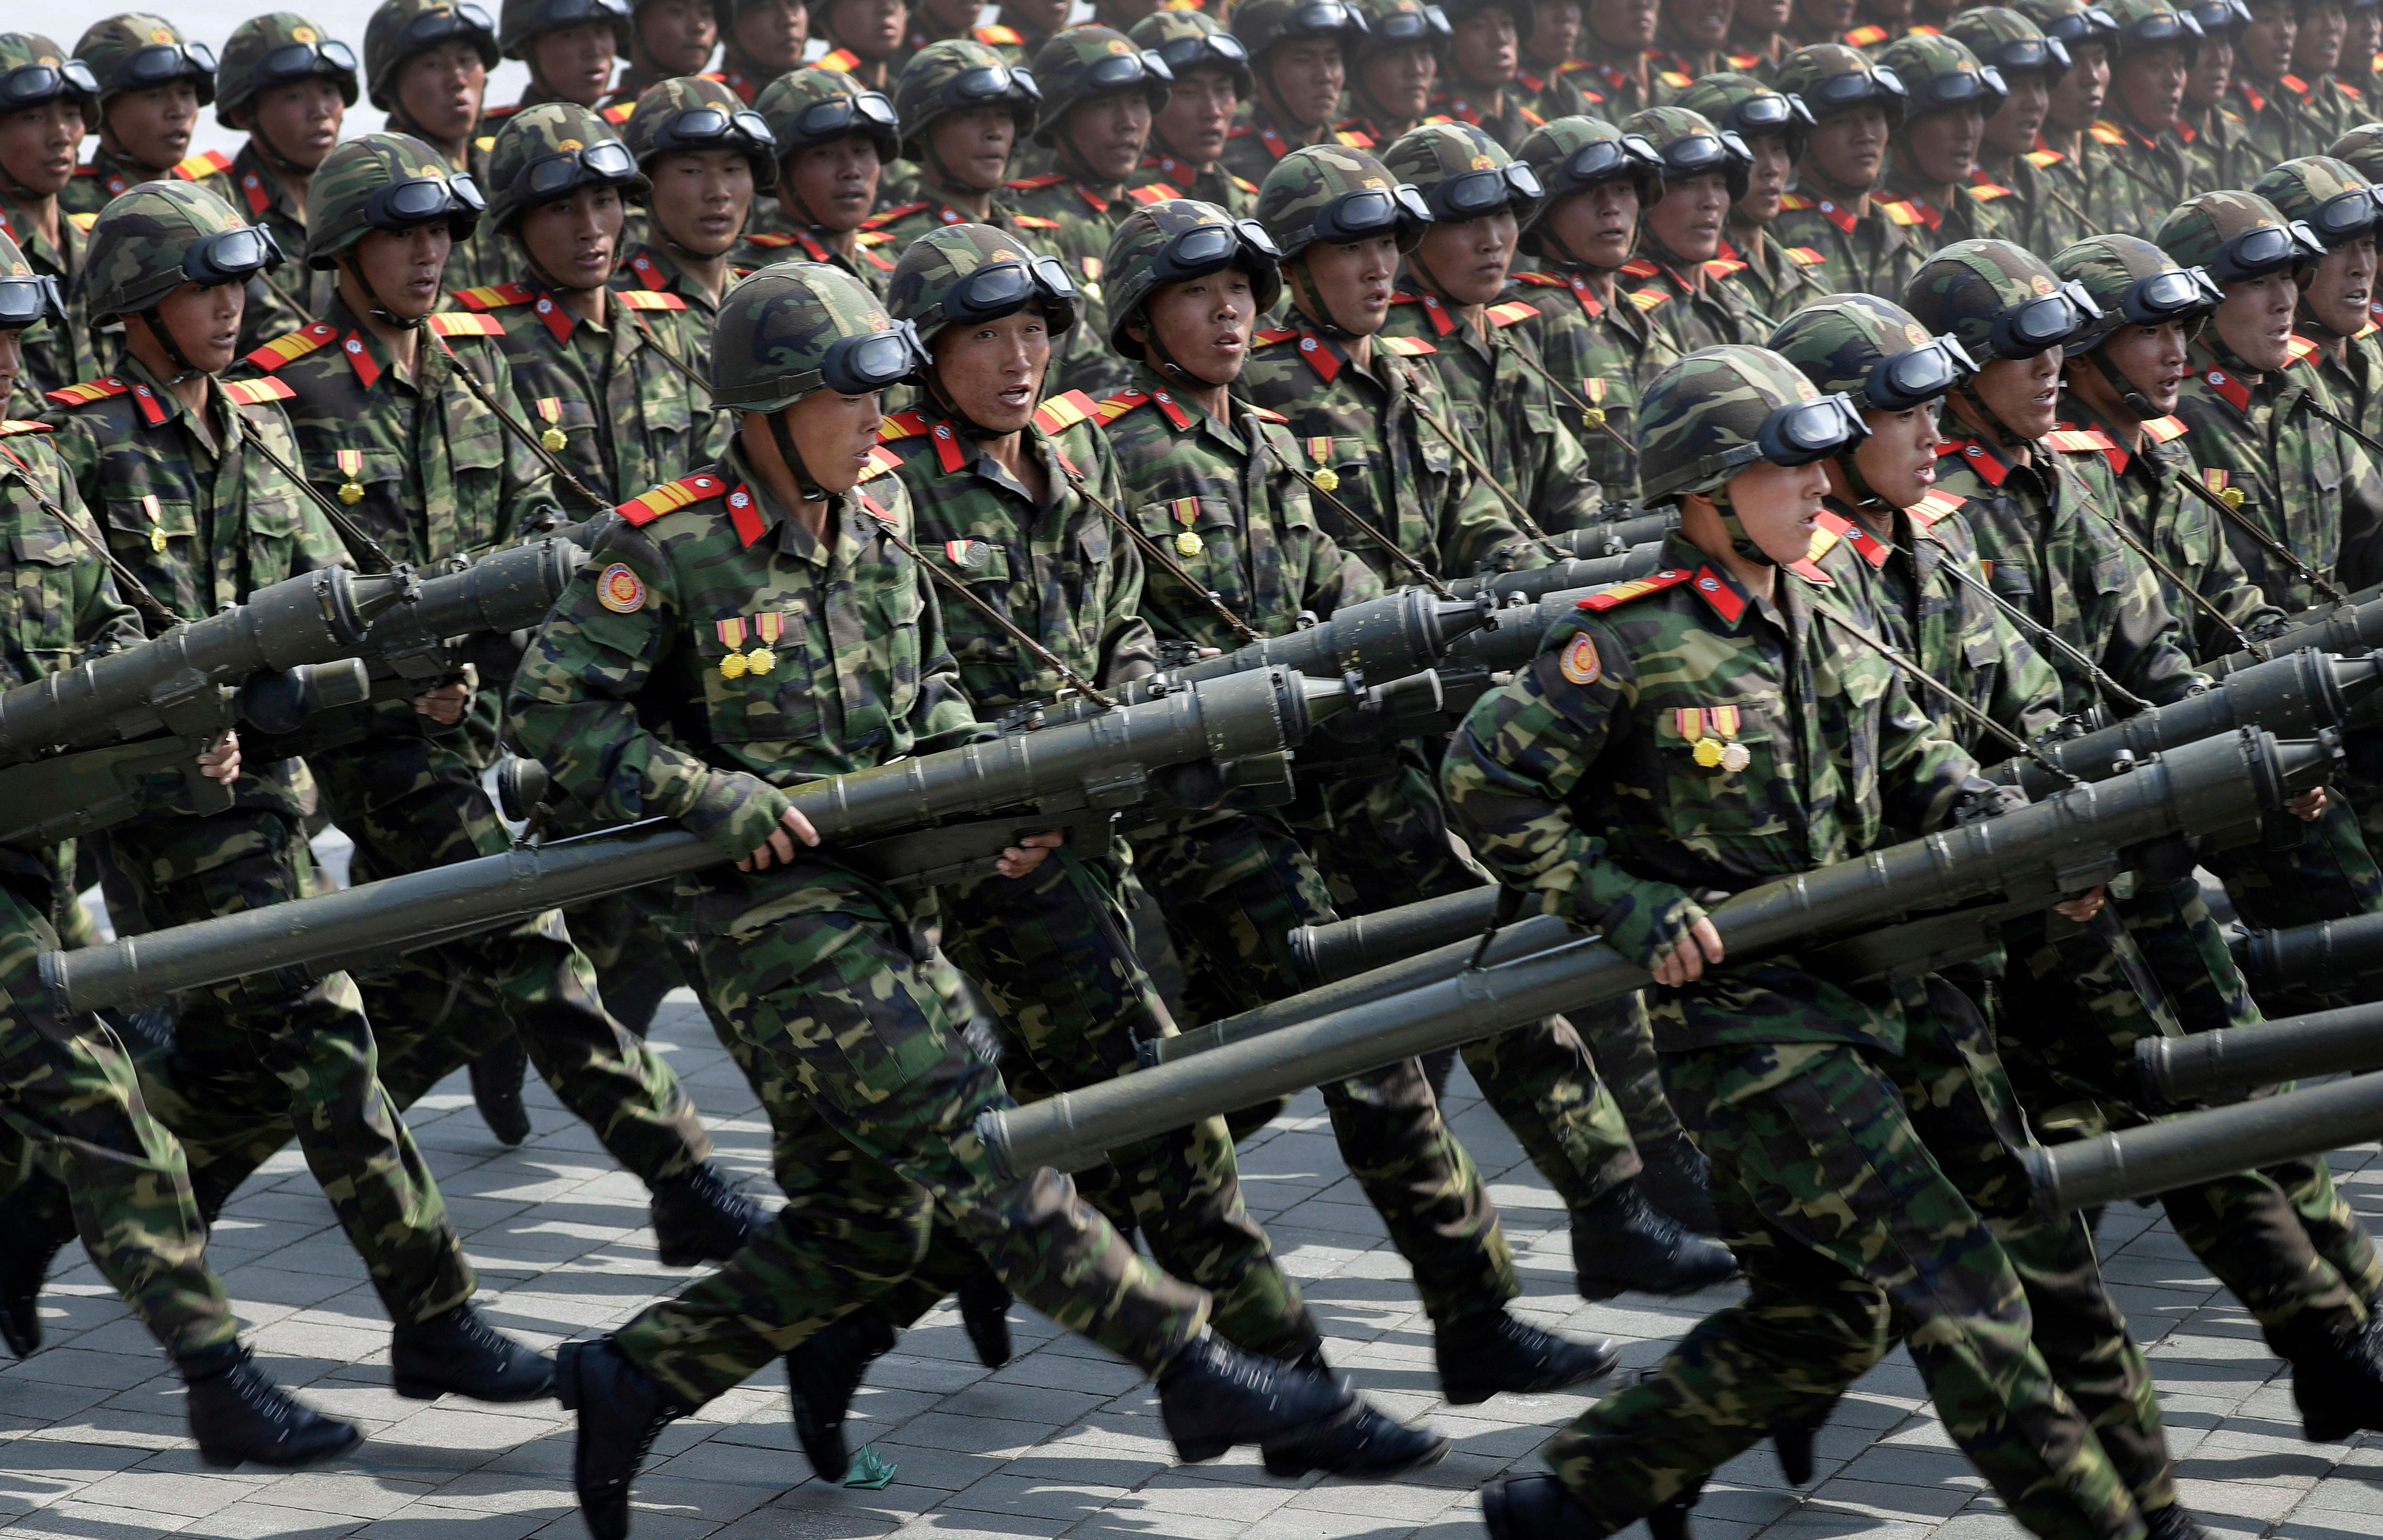 In this April 15, 2017, photo, soldiers carrying rockets march across Kim Il Sung Square during a military parade to celebrate the 105th birth anniversary of Kim Il Sung in Pyongyang, North Korea. Fresh off an immense North Korean parade that revealed an arsenal of intercontinental ballistic missiles, rival South Korea and its allies are bracing for the possibility that Pyongyang's follow-up act will be even bigger. (AP Photo/Wong Maye-E)